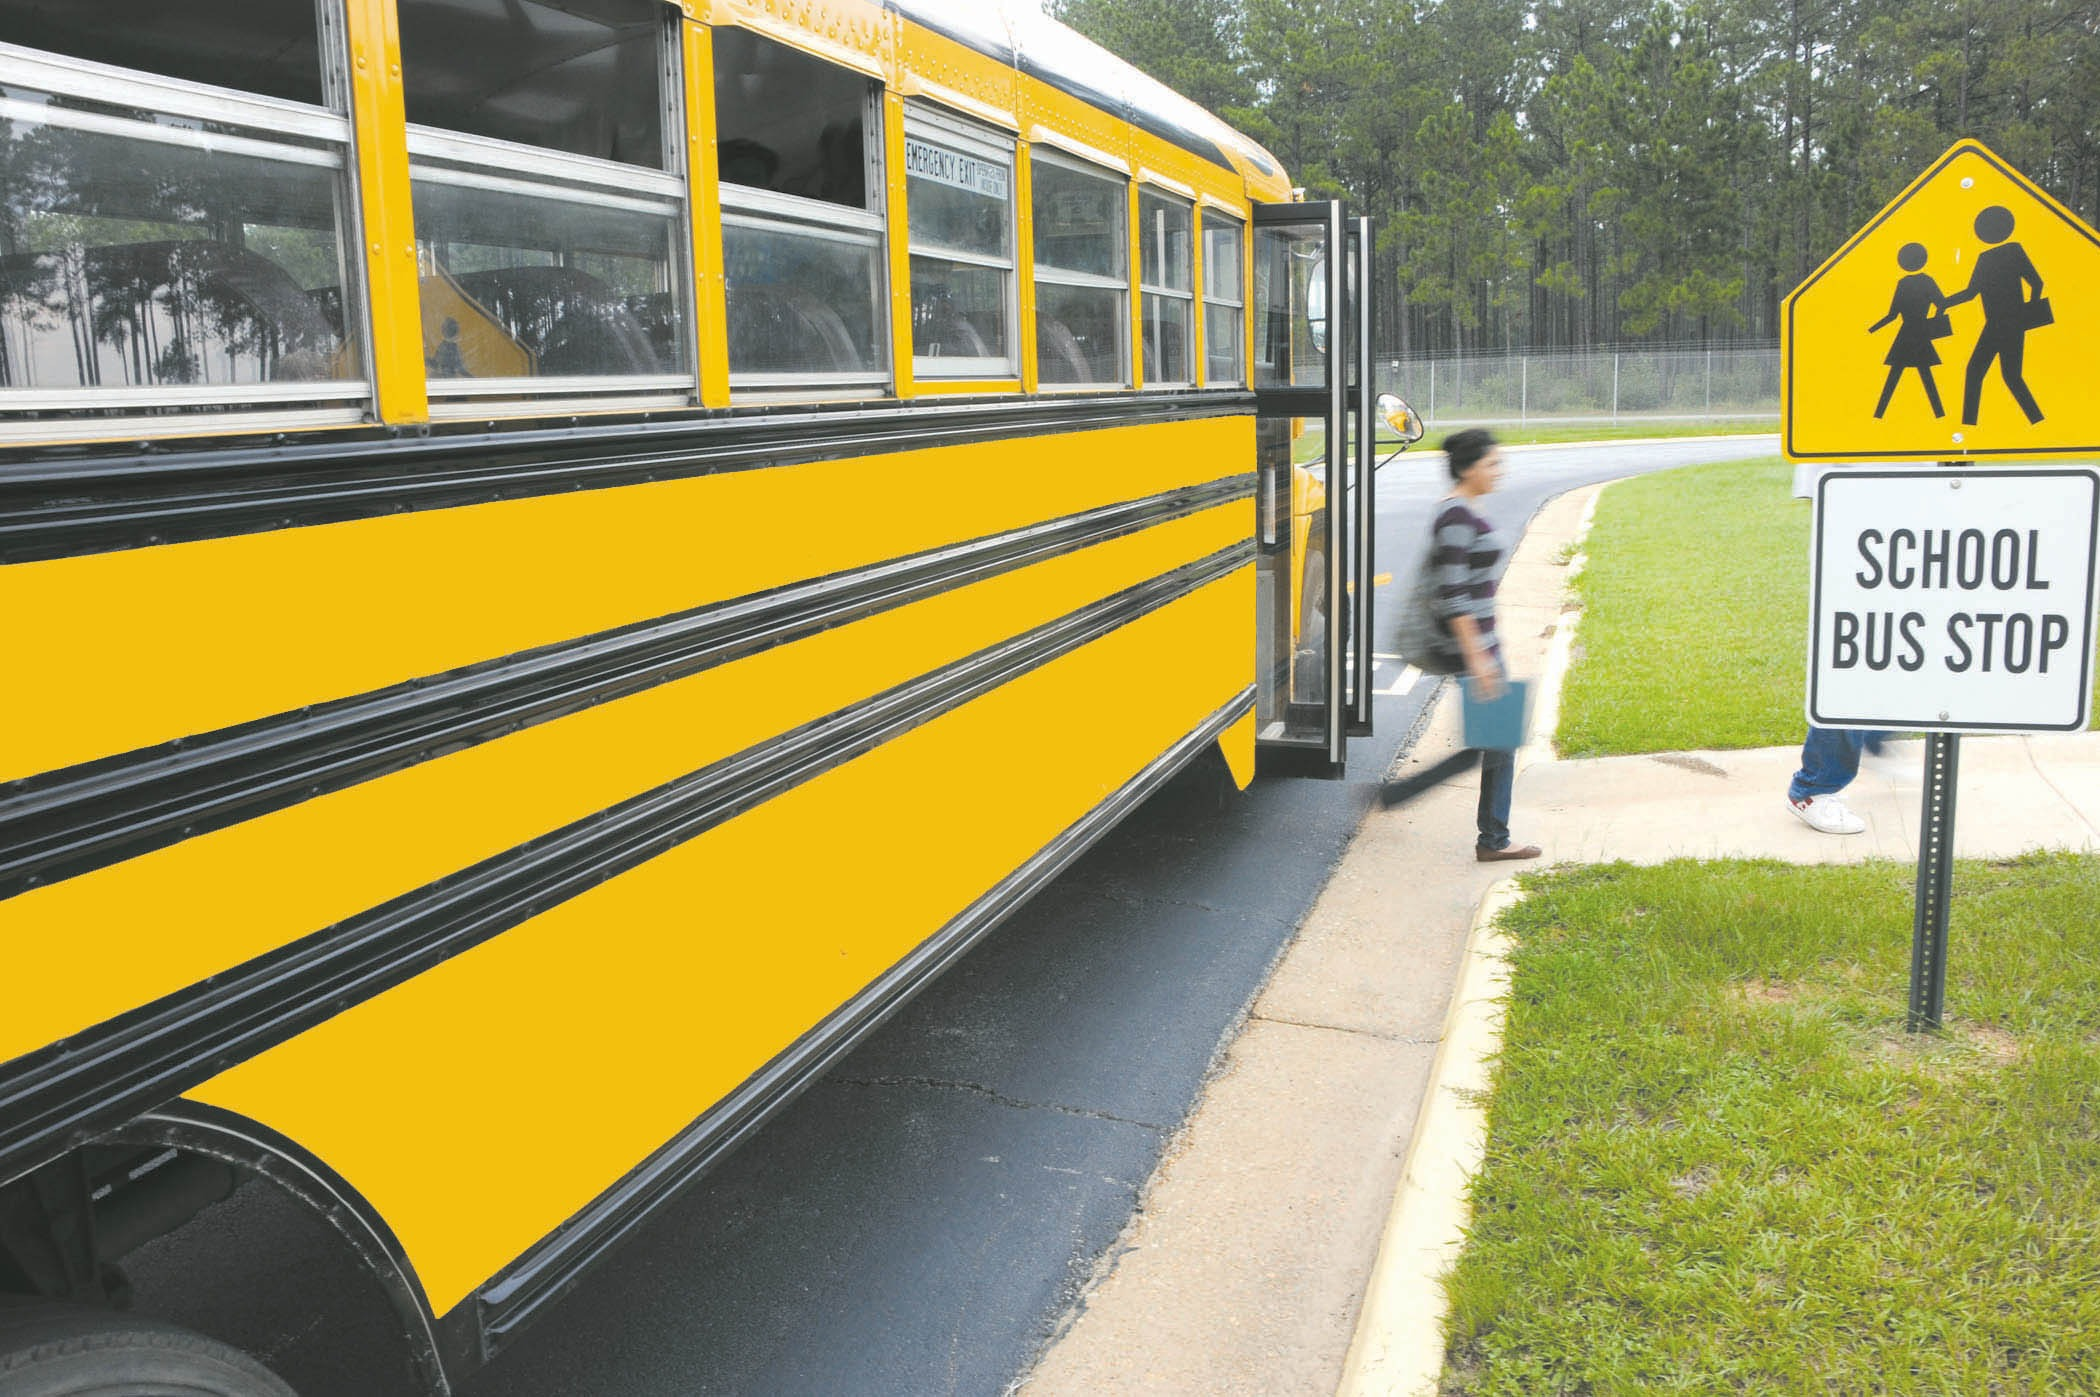 Charter schools must have sunshine, too